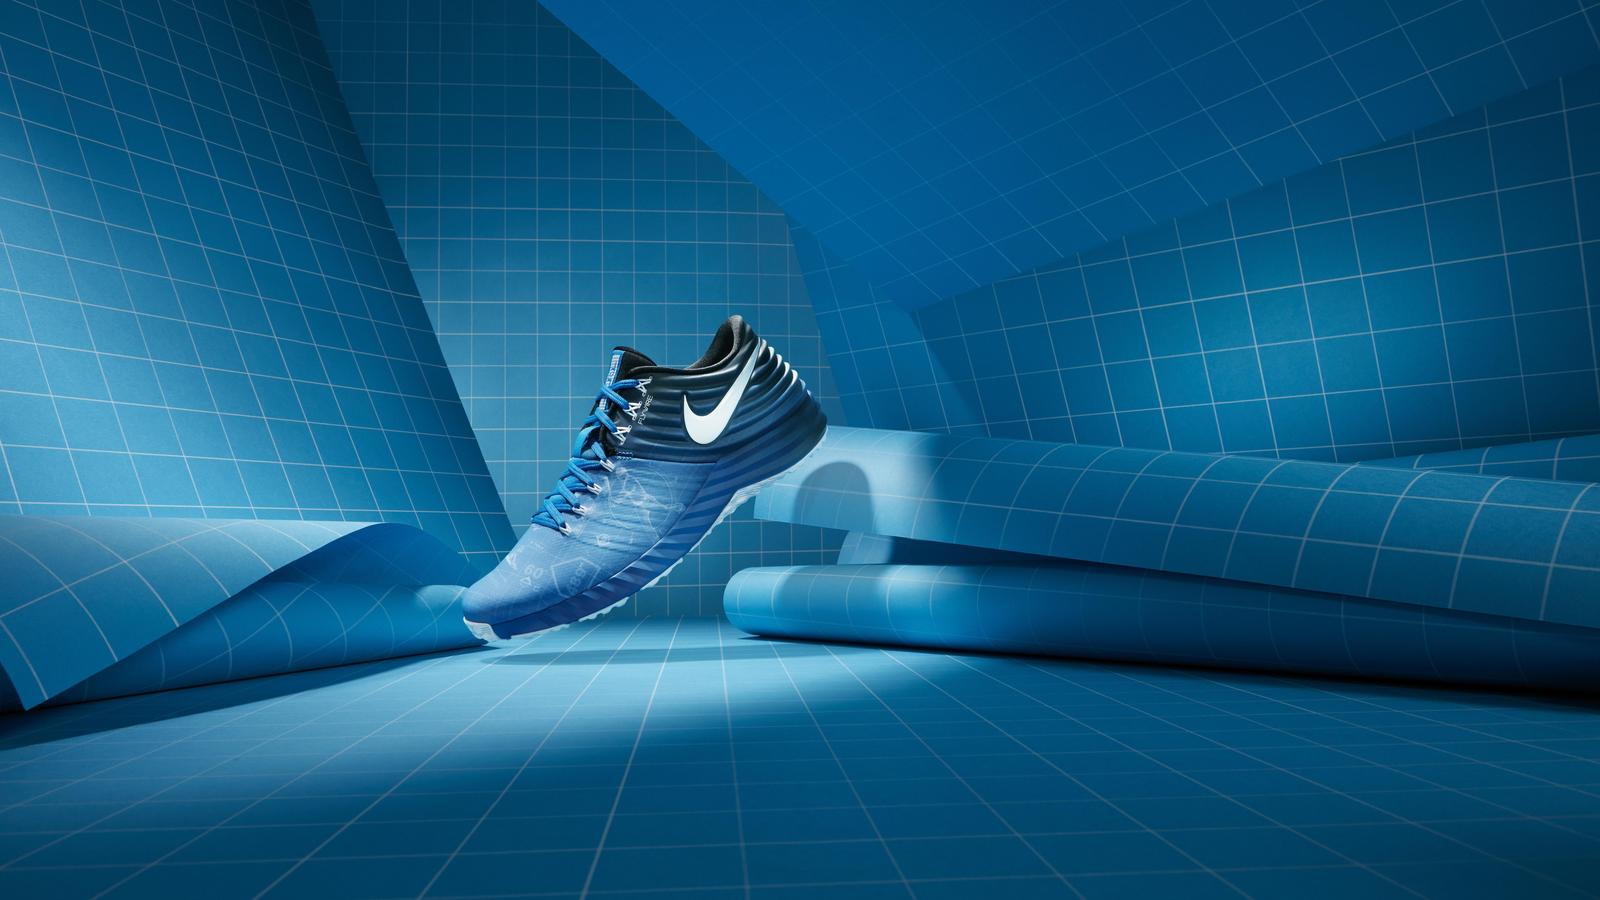 Nike_Lunar_Trout_2_Turf_Blueprint_BASE_0172_rgb copy